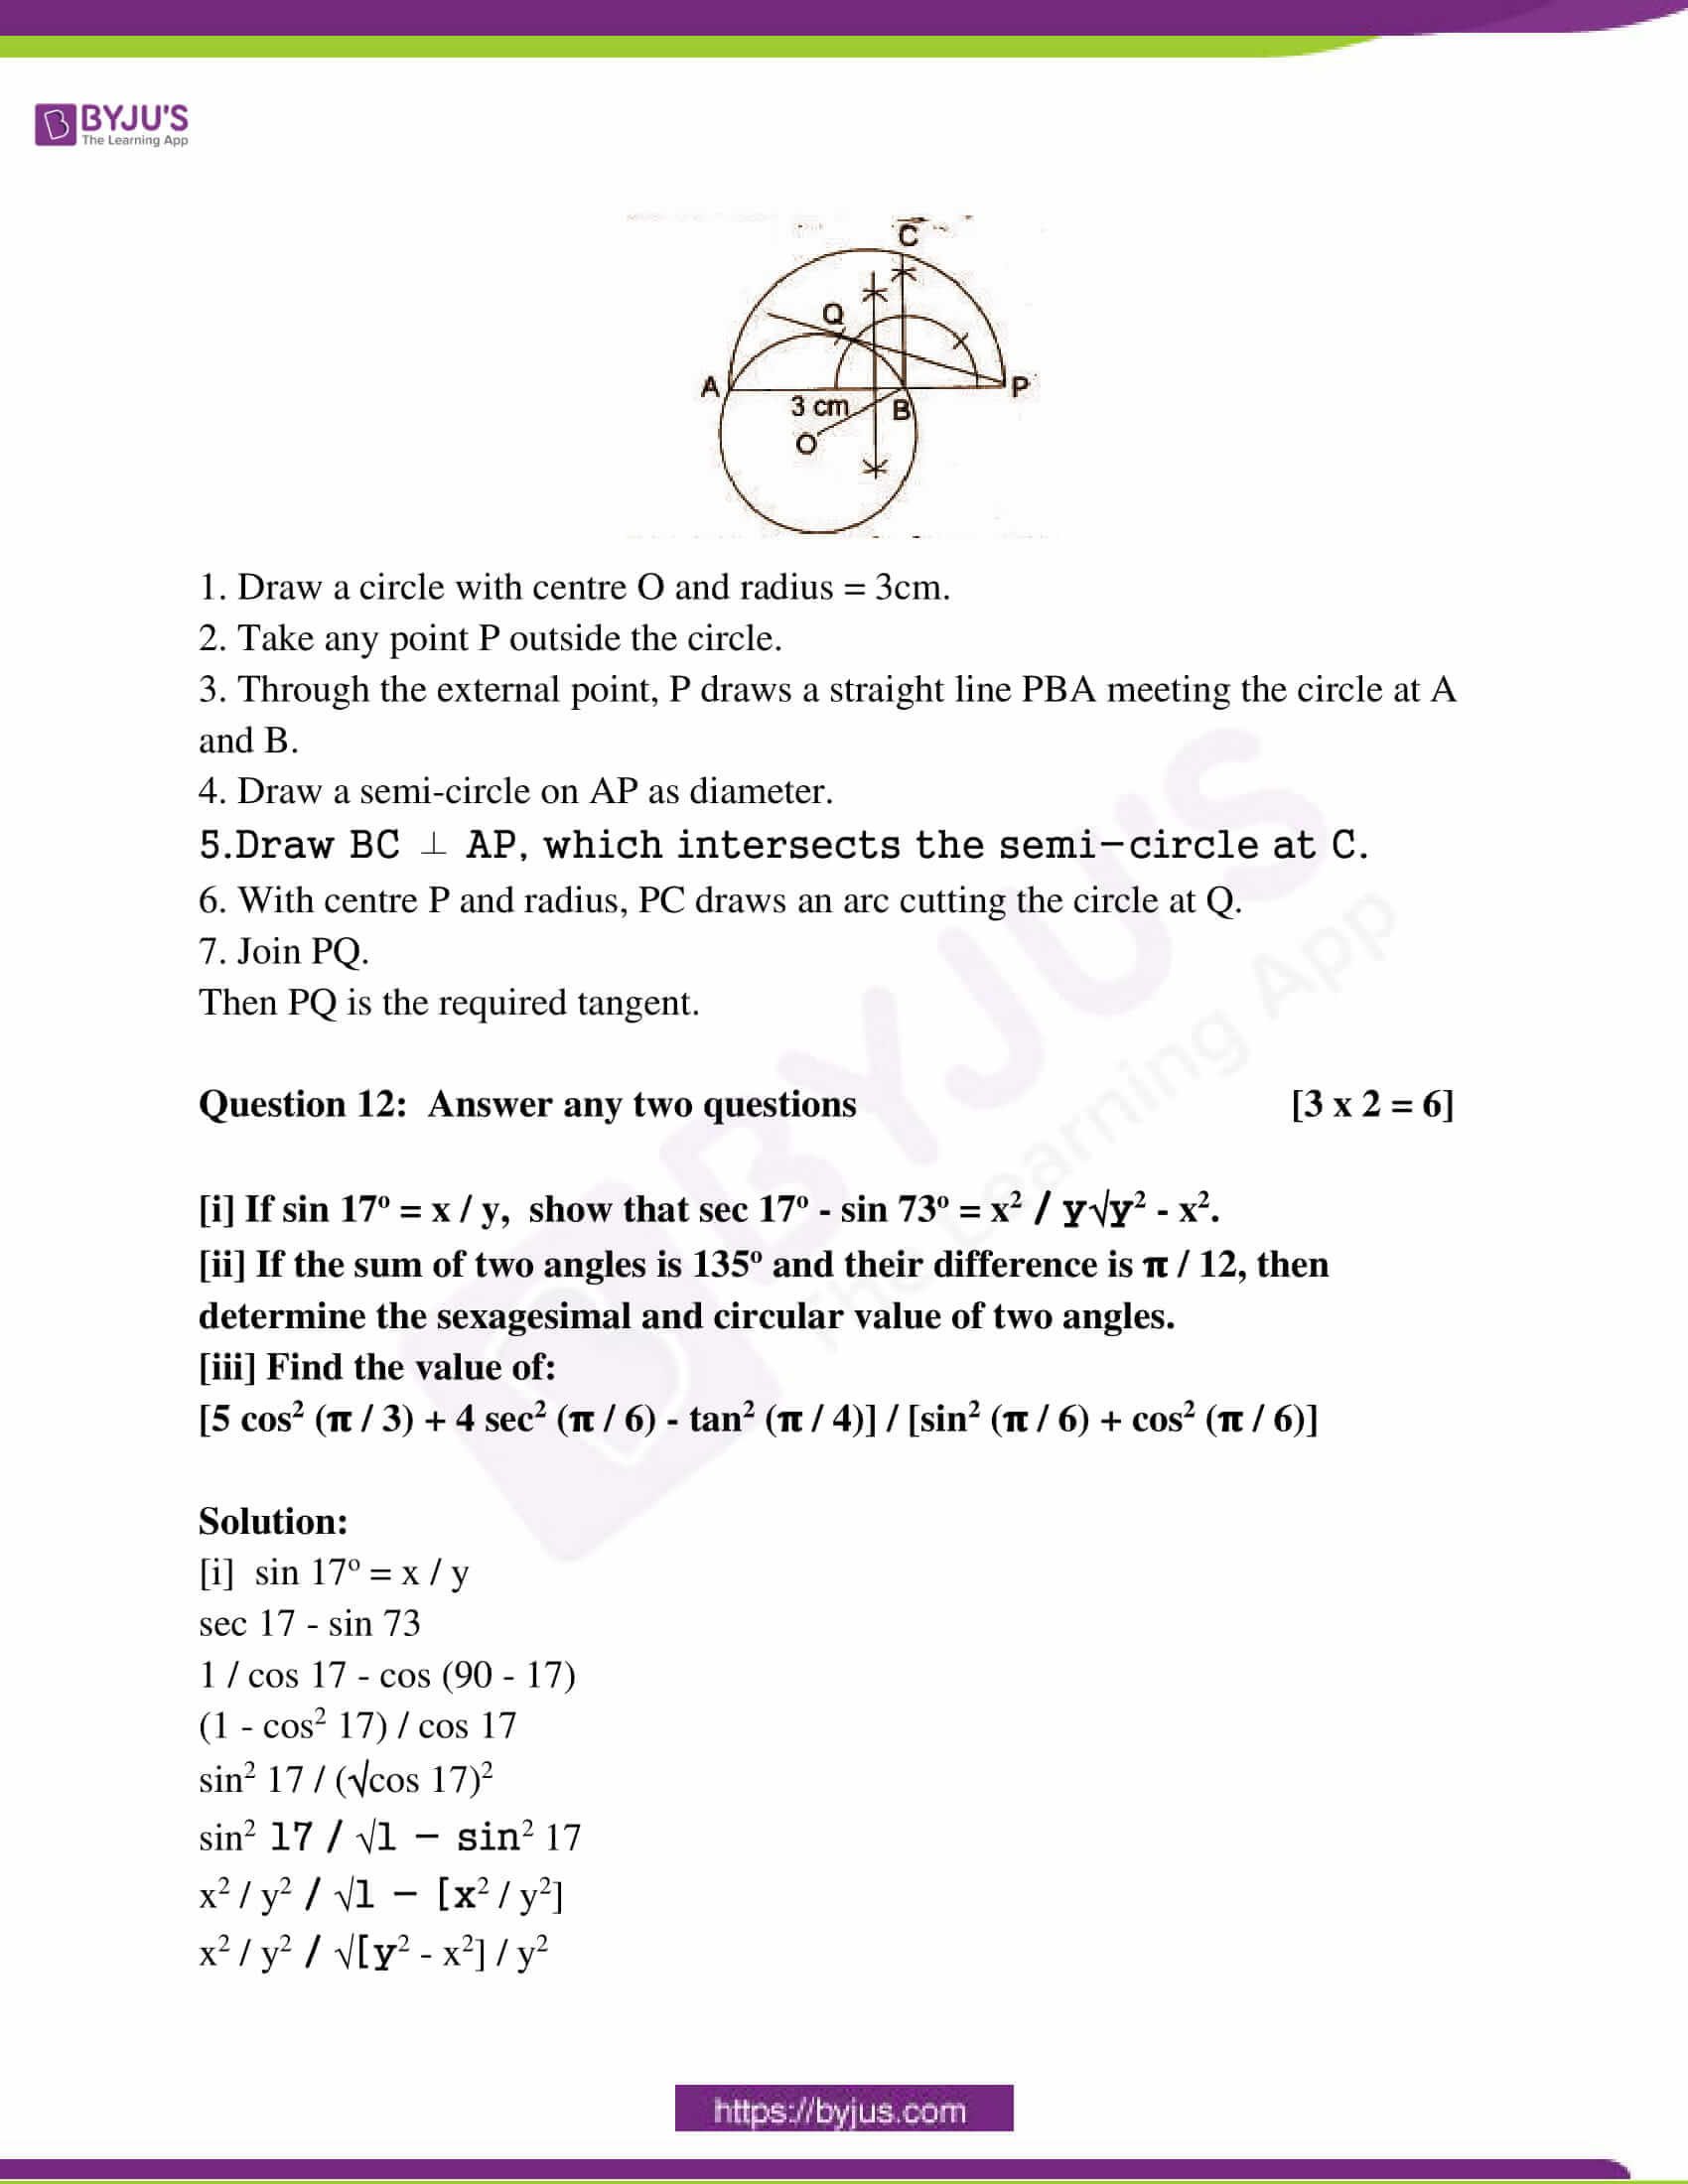 west bengal class 10 exam question paper solutions march 2020 20